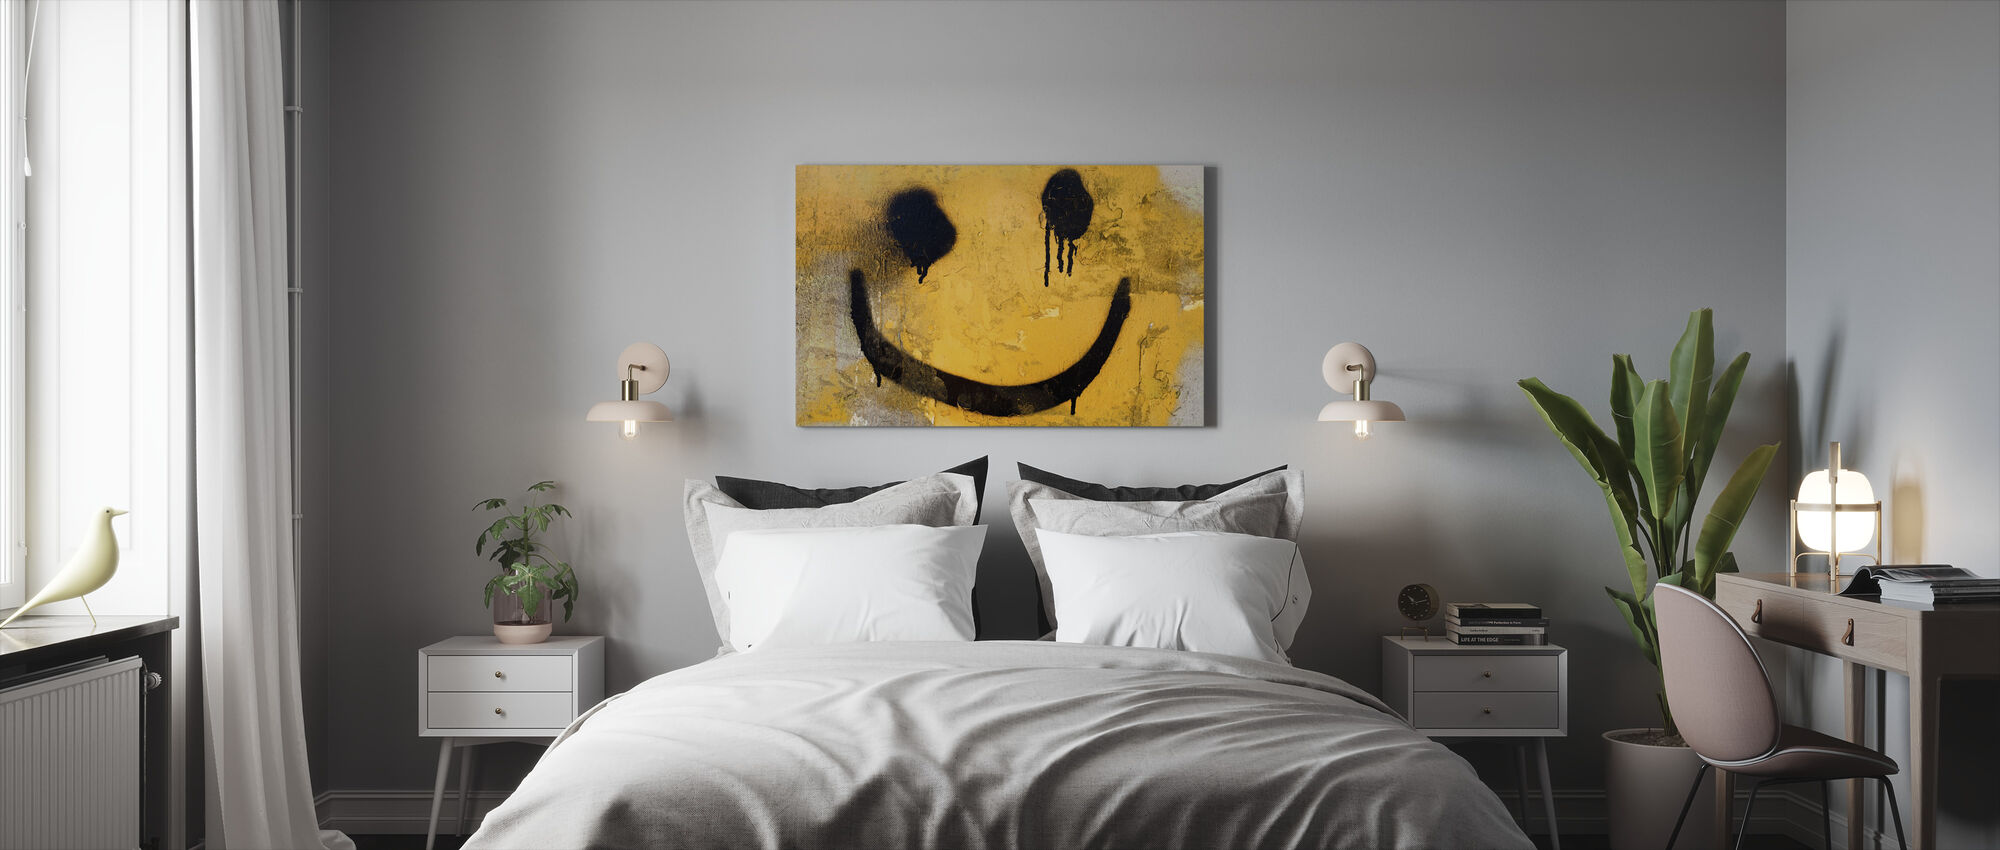 Smiley Face - Canvas print - Bedroom